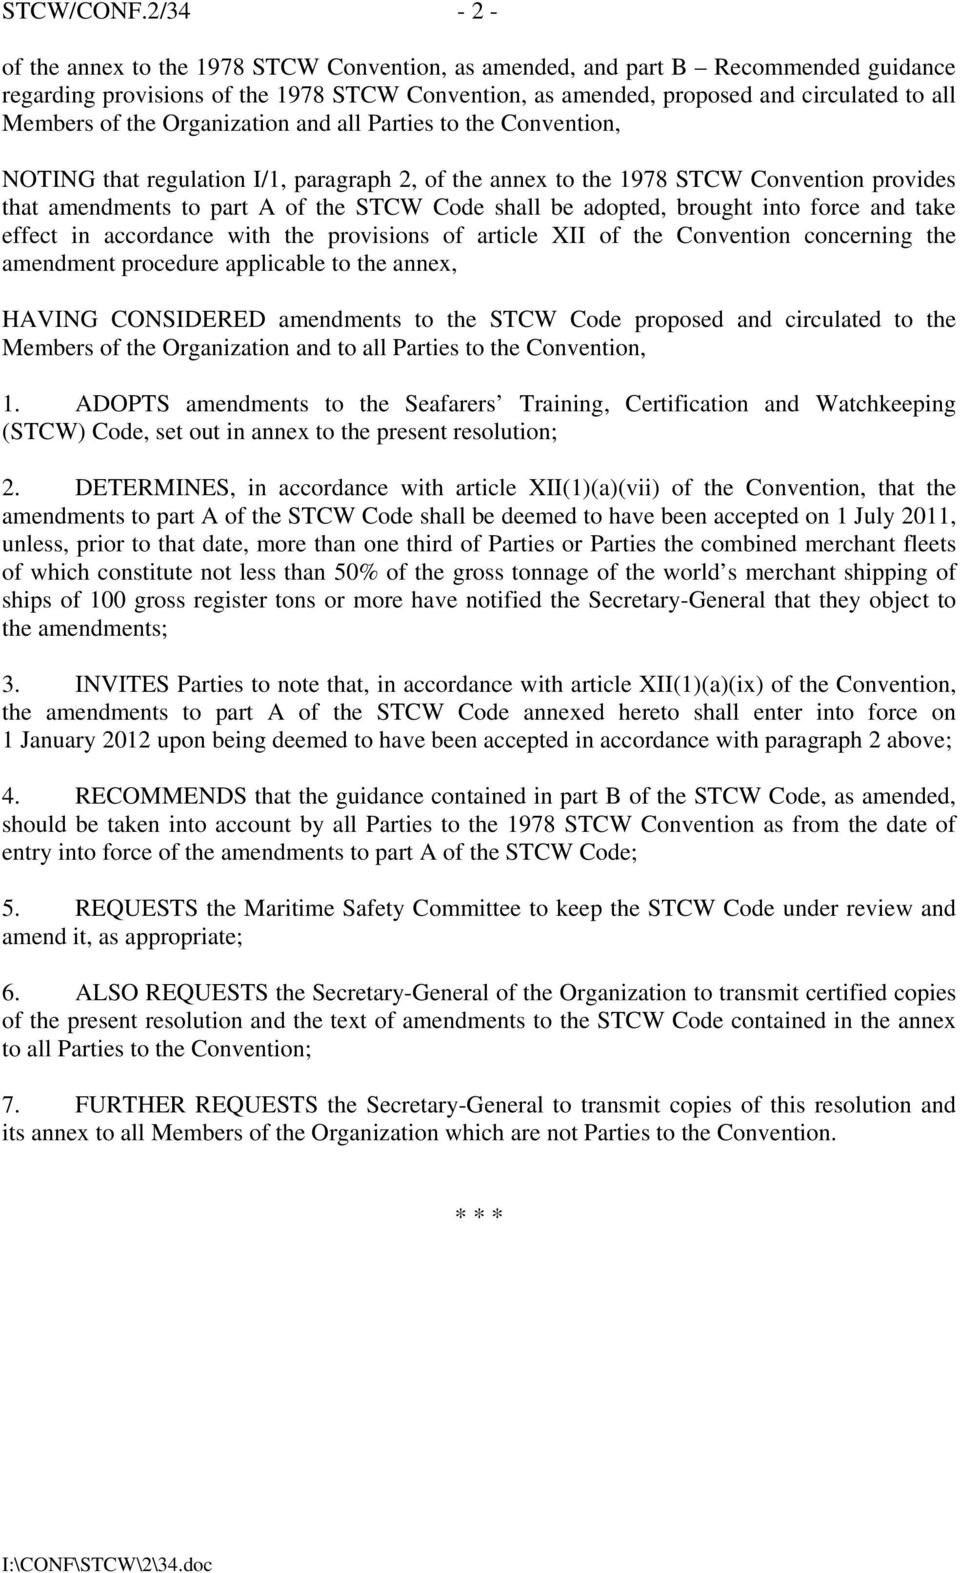 the Organization and all Parties to the Convention, NOTING that regulation I/1, paragraph 2, of the annex to the 1978 STCW Convention provides that amendments to part A of the STCW Code shall be